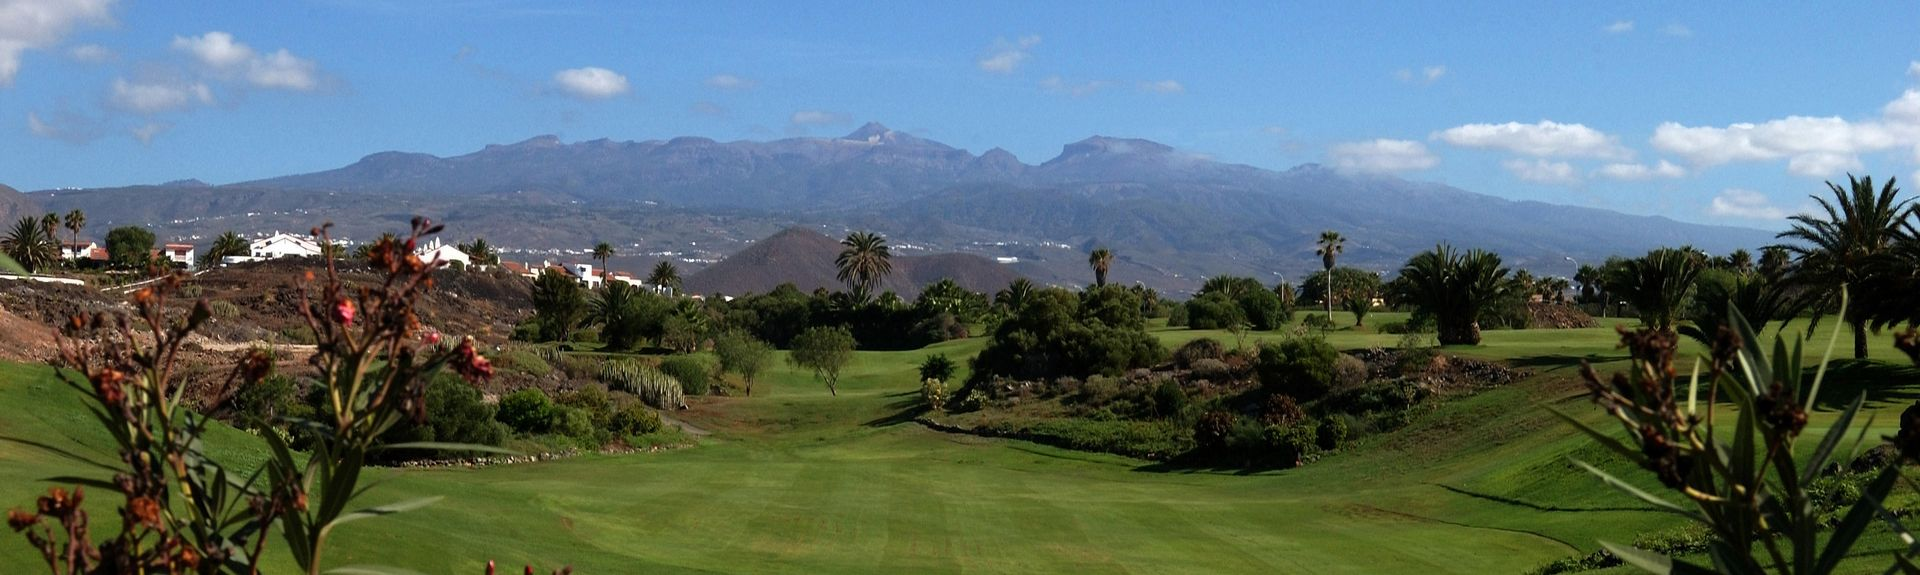 Golf del Sur, Isole Canarie, Spagna